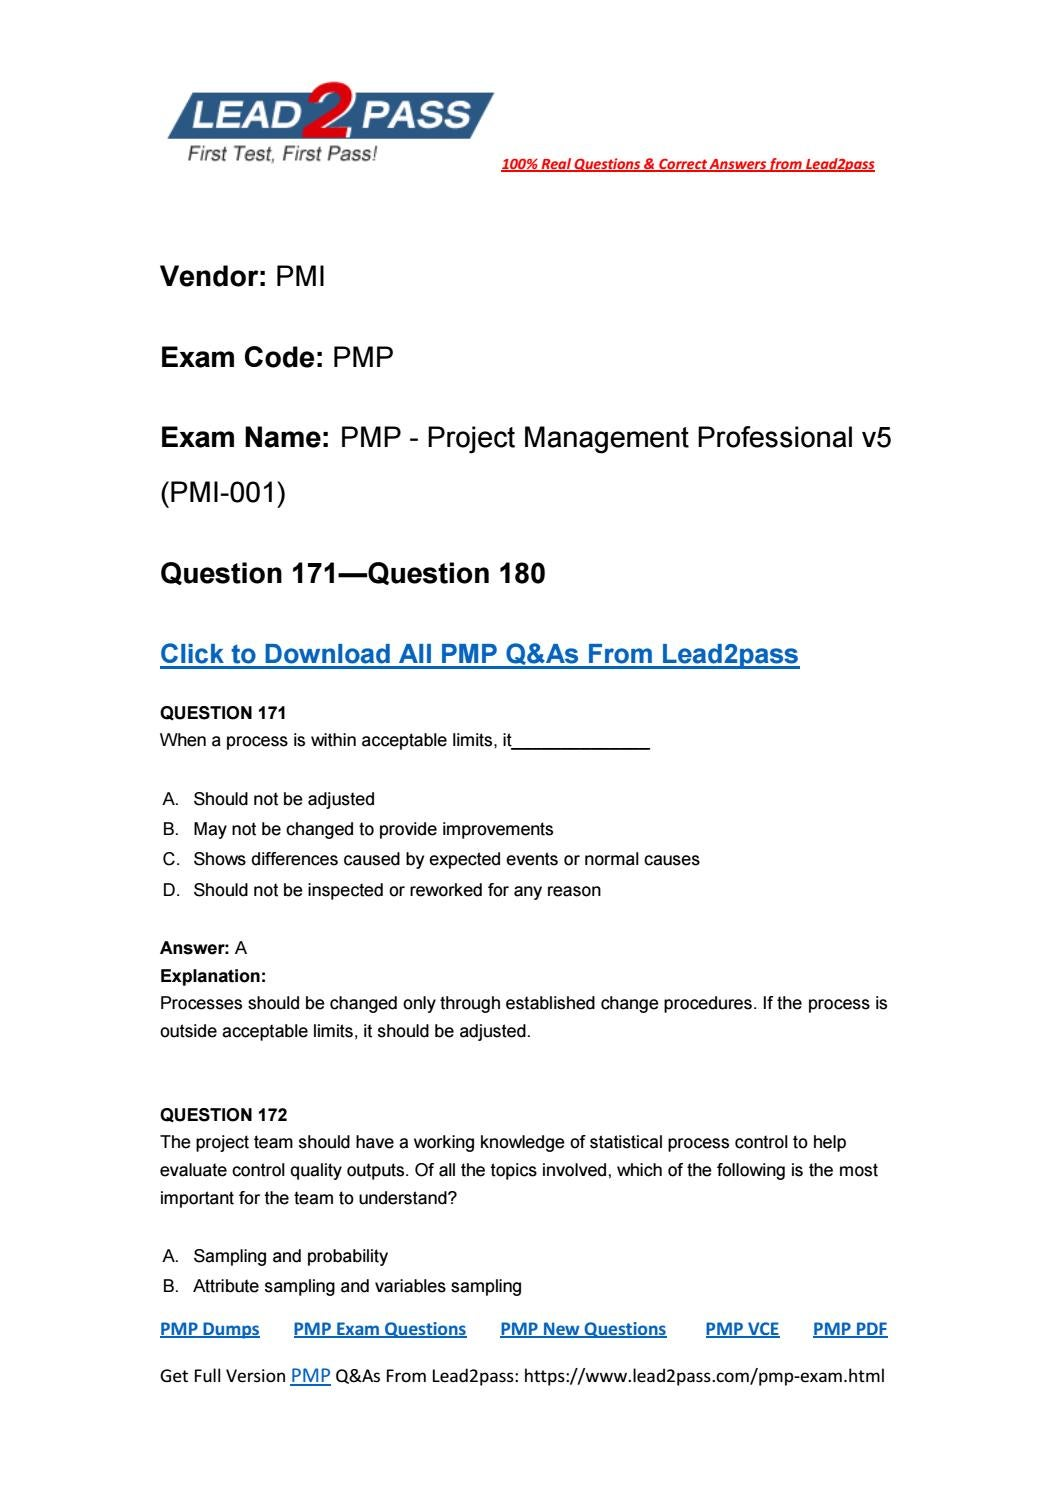 Lead2pass Pmp Dumps Pdf Free Download 171 180 By Magichou1 Issuu